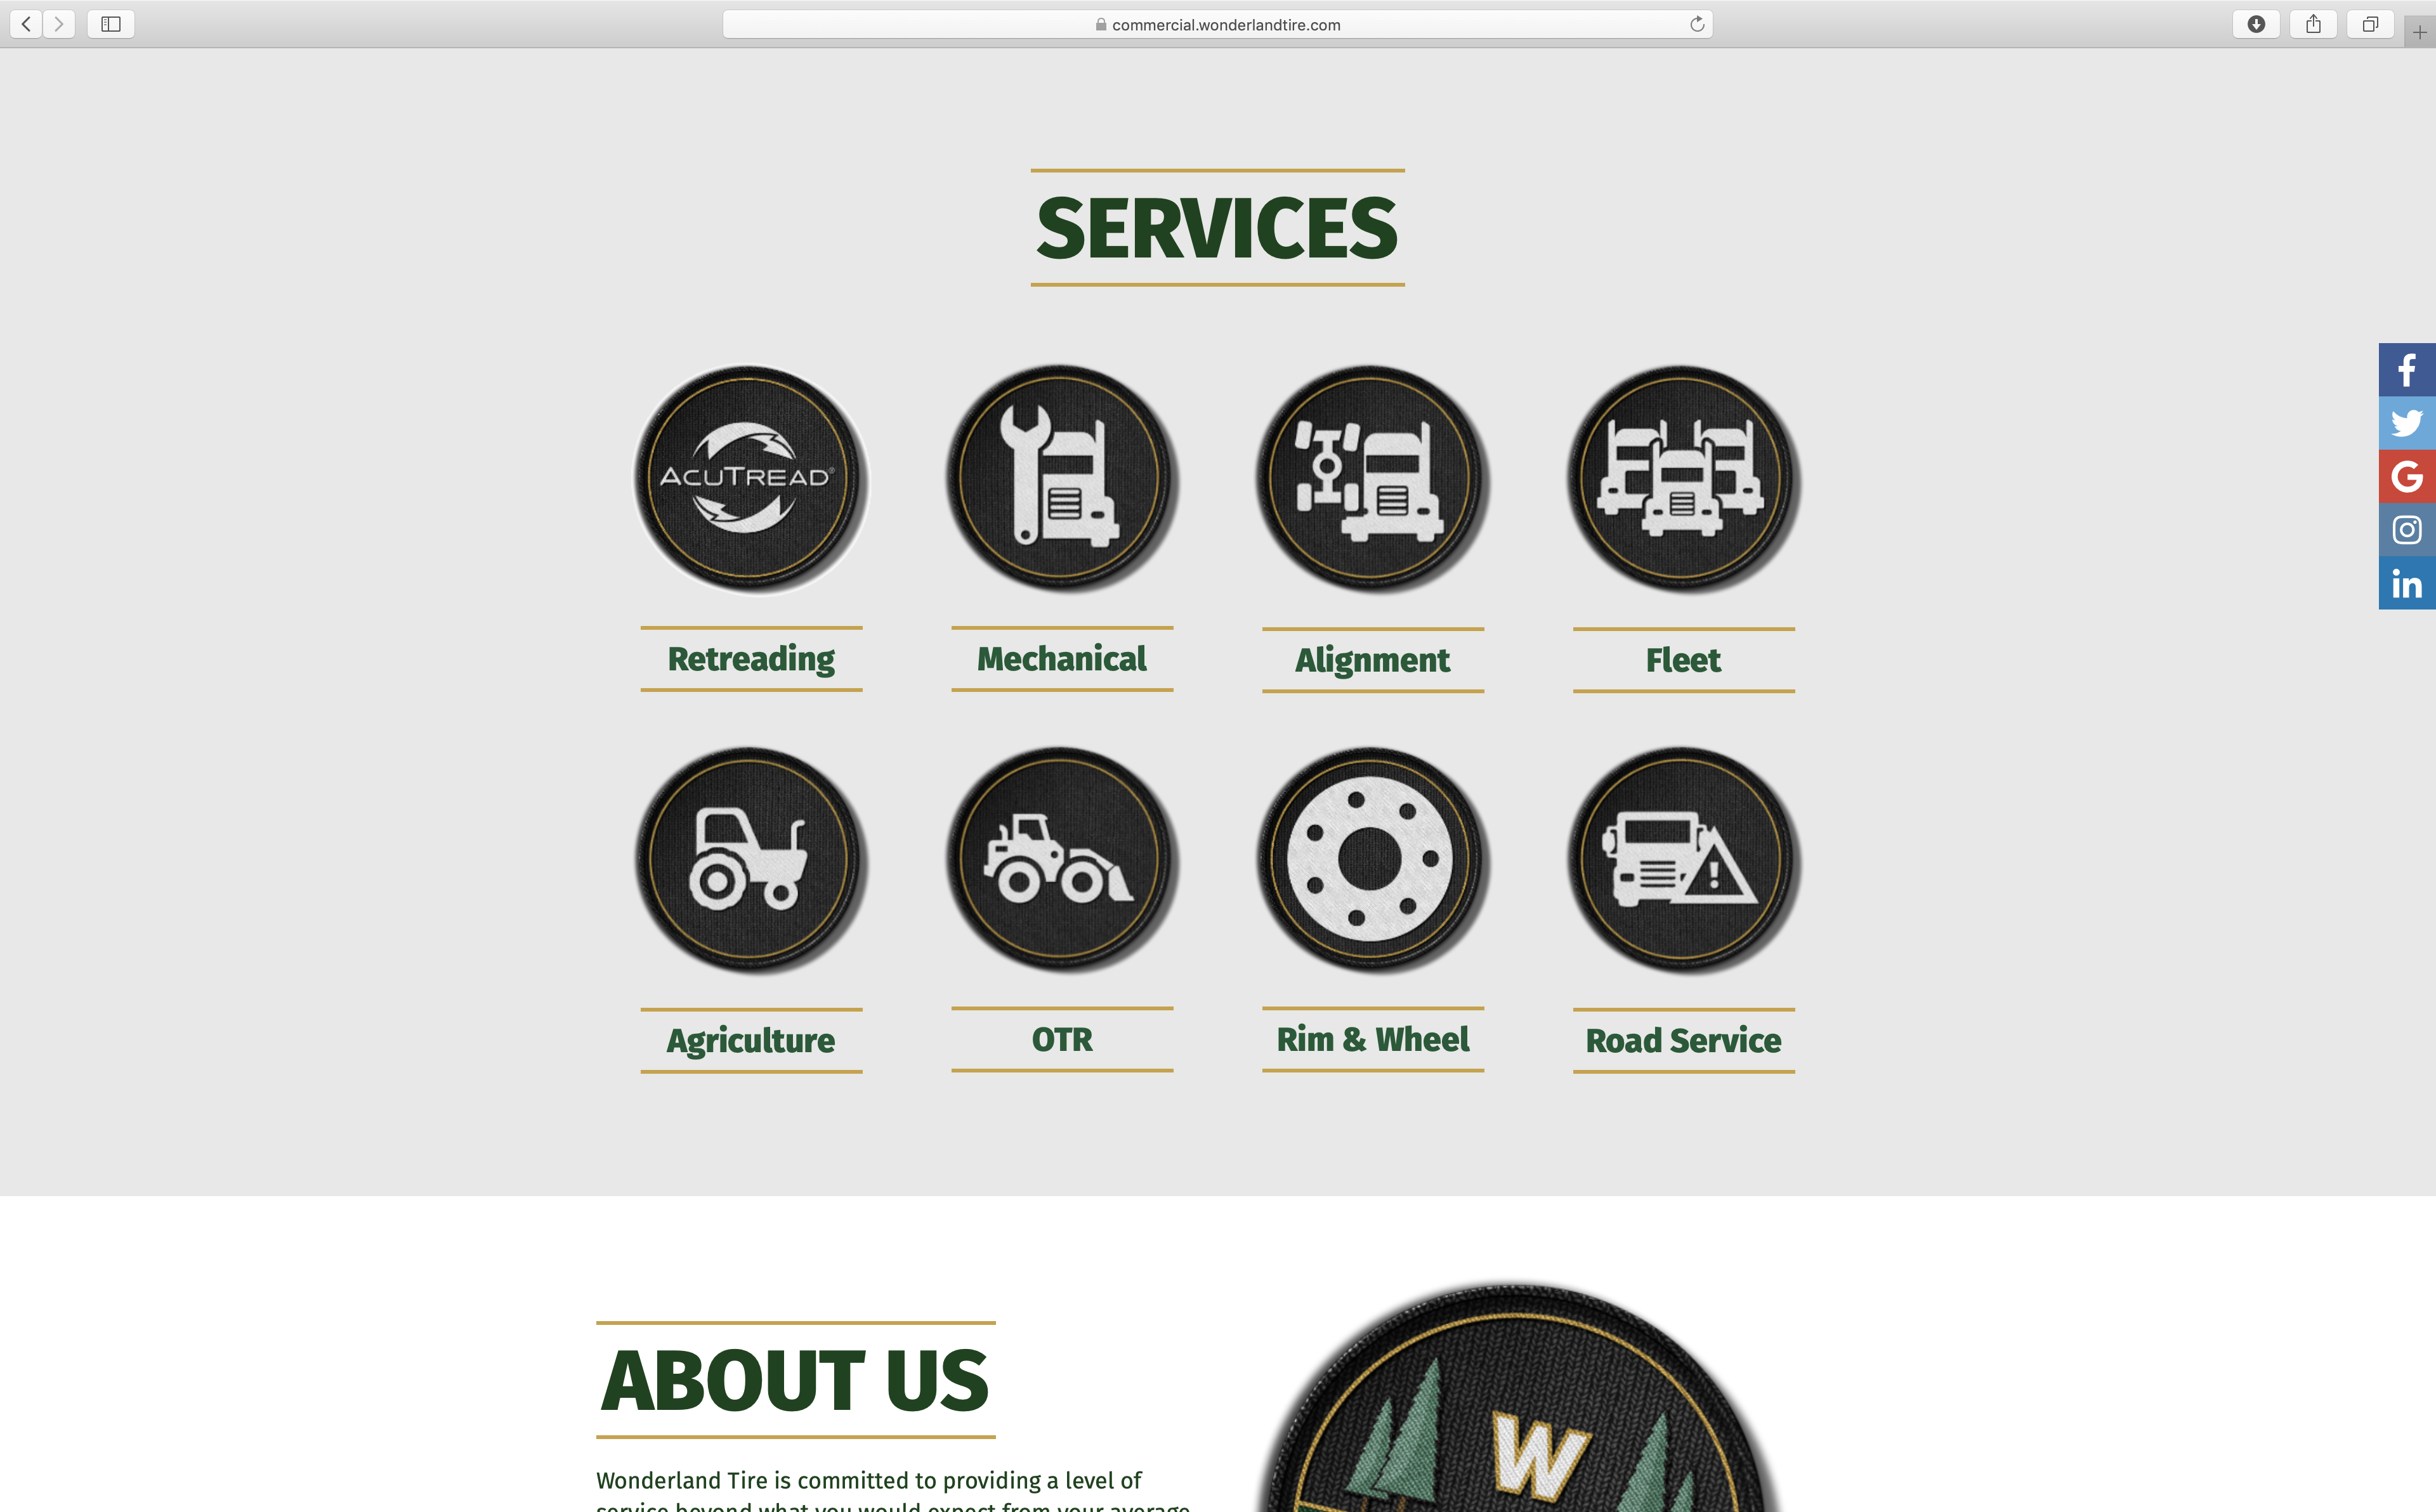 minimal wonderland tire website with services listed